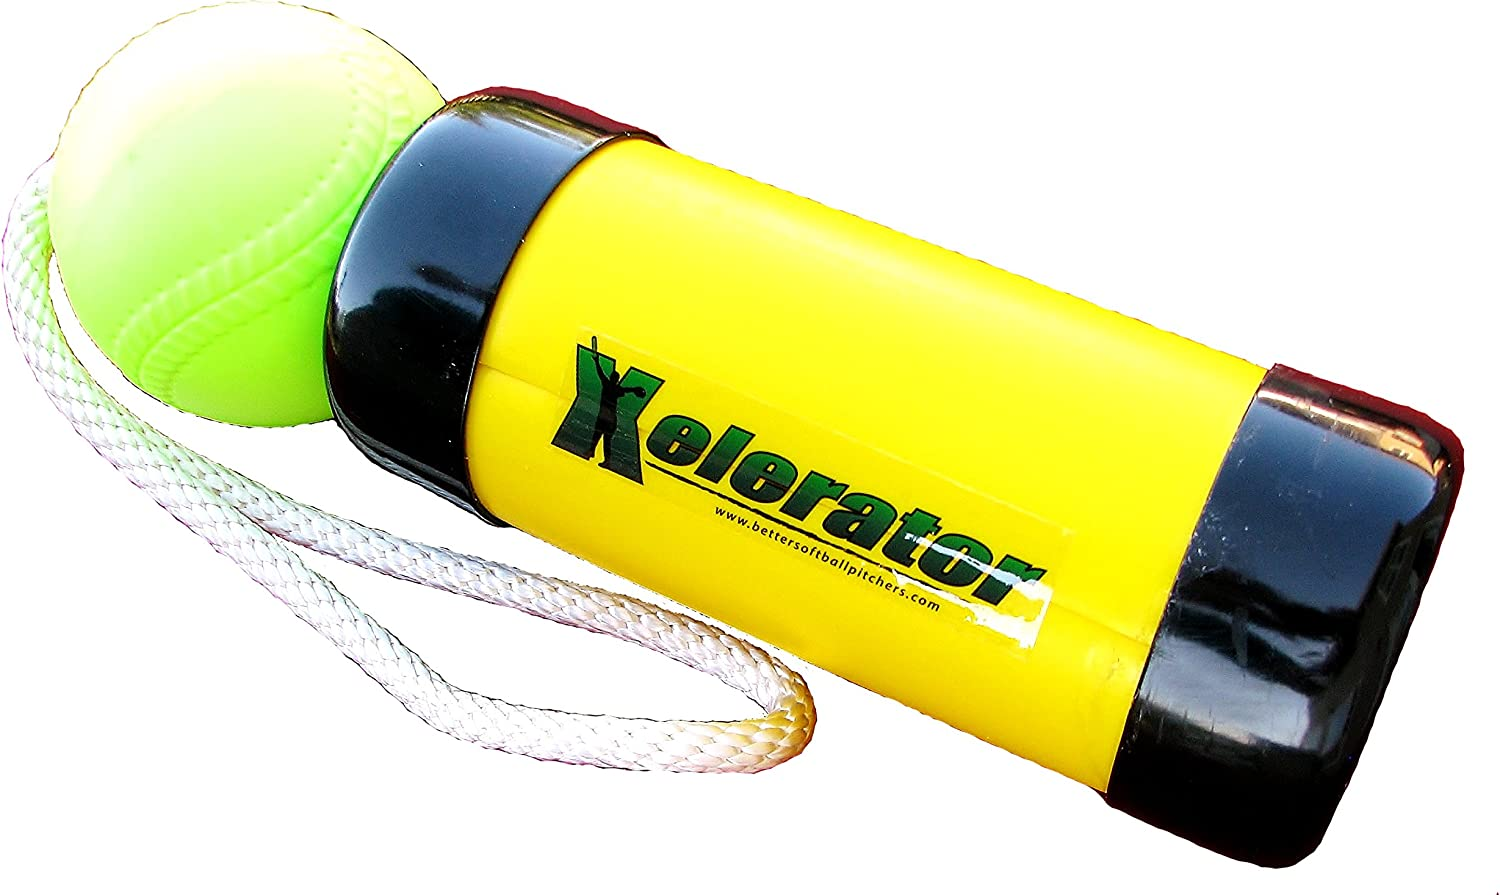 The Ultimate Xelerator Fastpitch Softball Pitching Training Aid And Warm Up T...